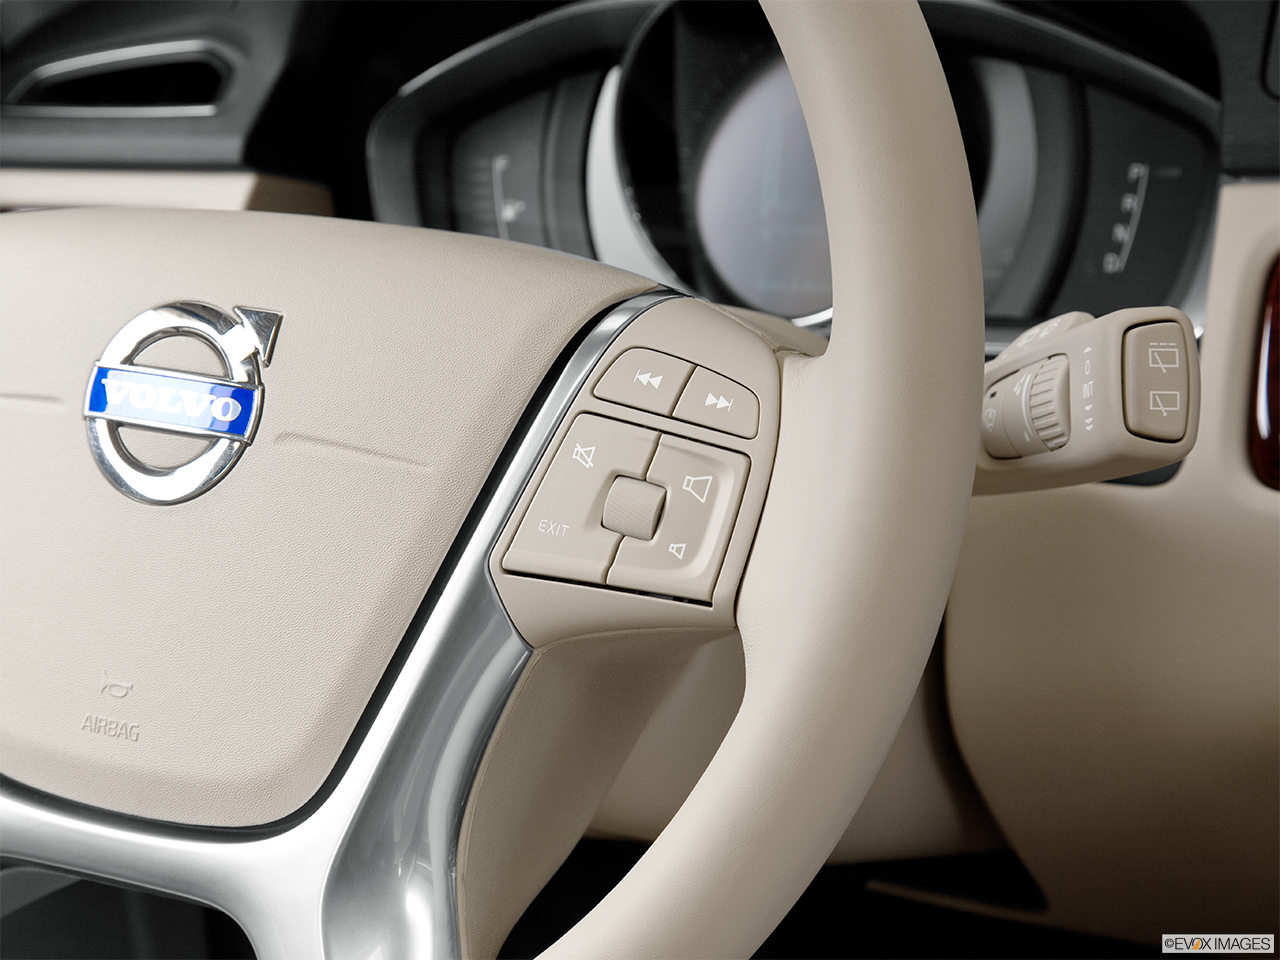 2014 Volvo XC70 3.2 AWD Premier Plus Steering Wheel Controls (Right Side)